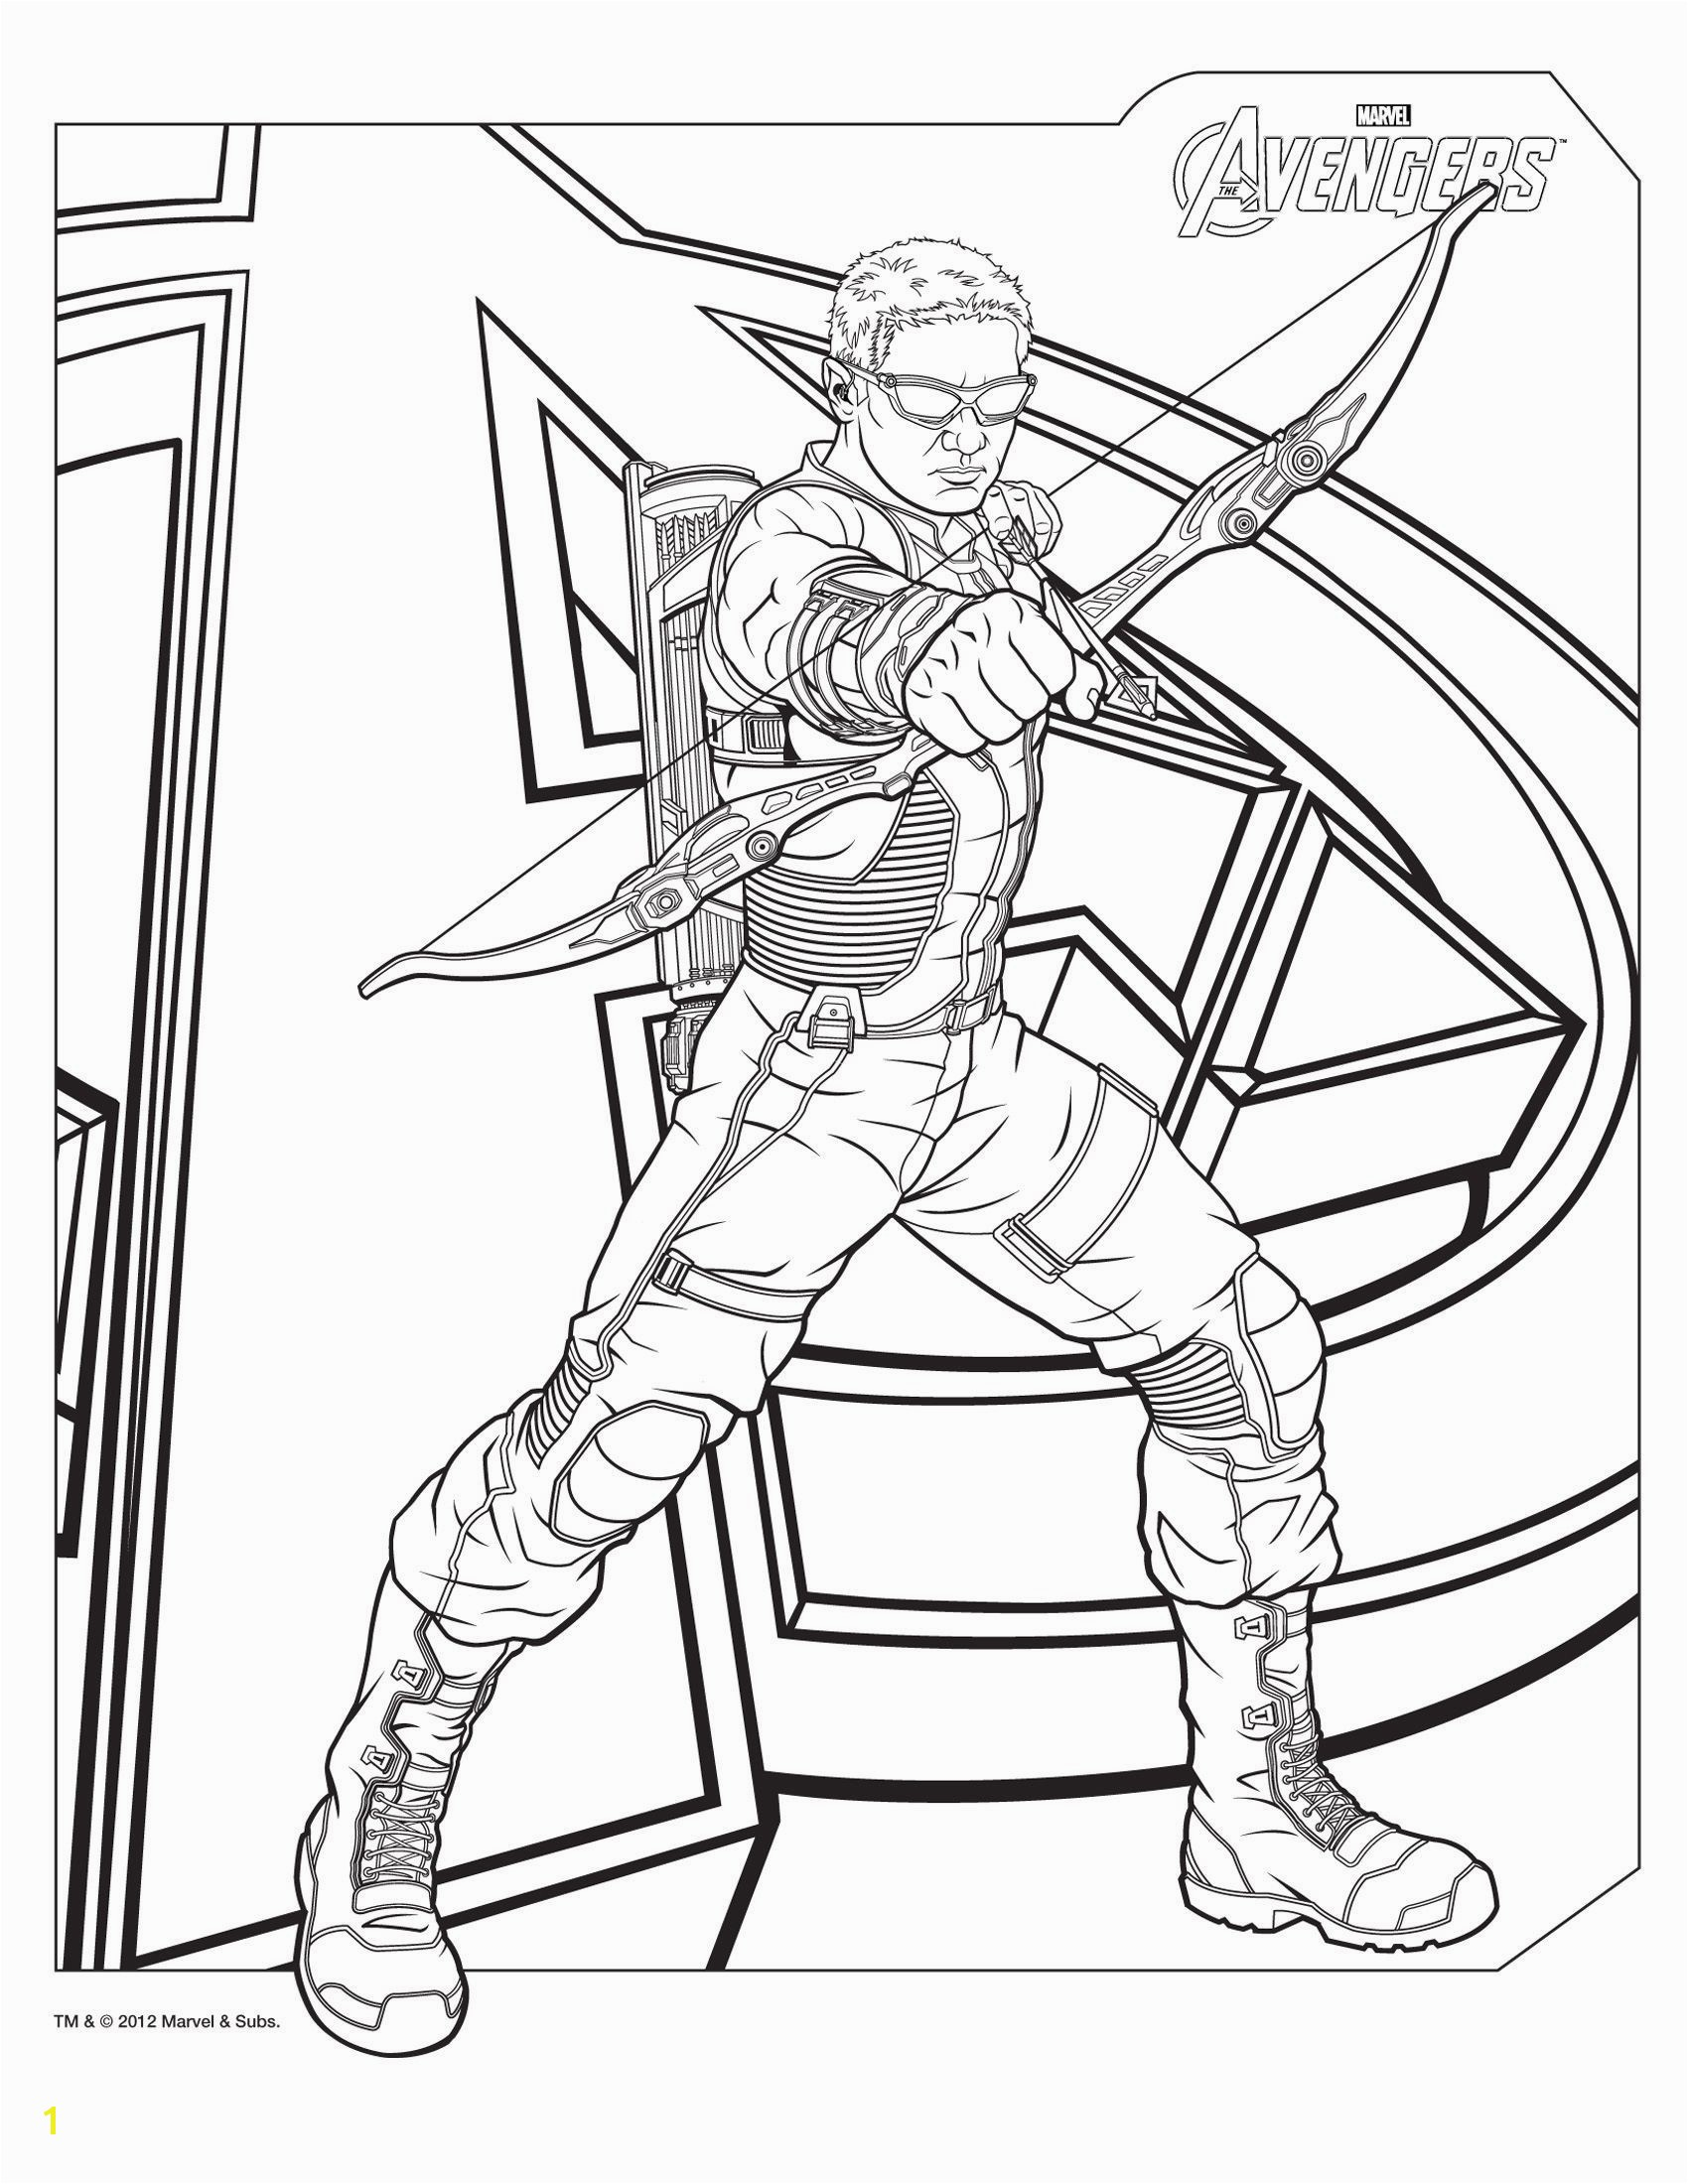 ic Coloring Pages Best 0 0d Spiderman Rituals You Should Know